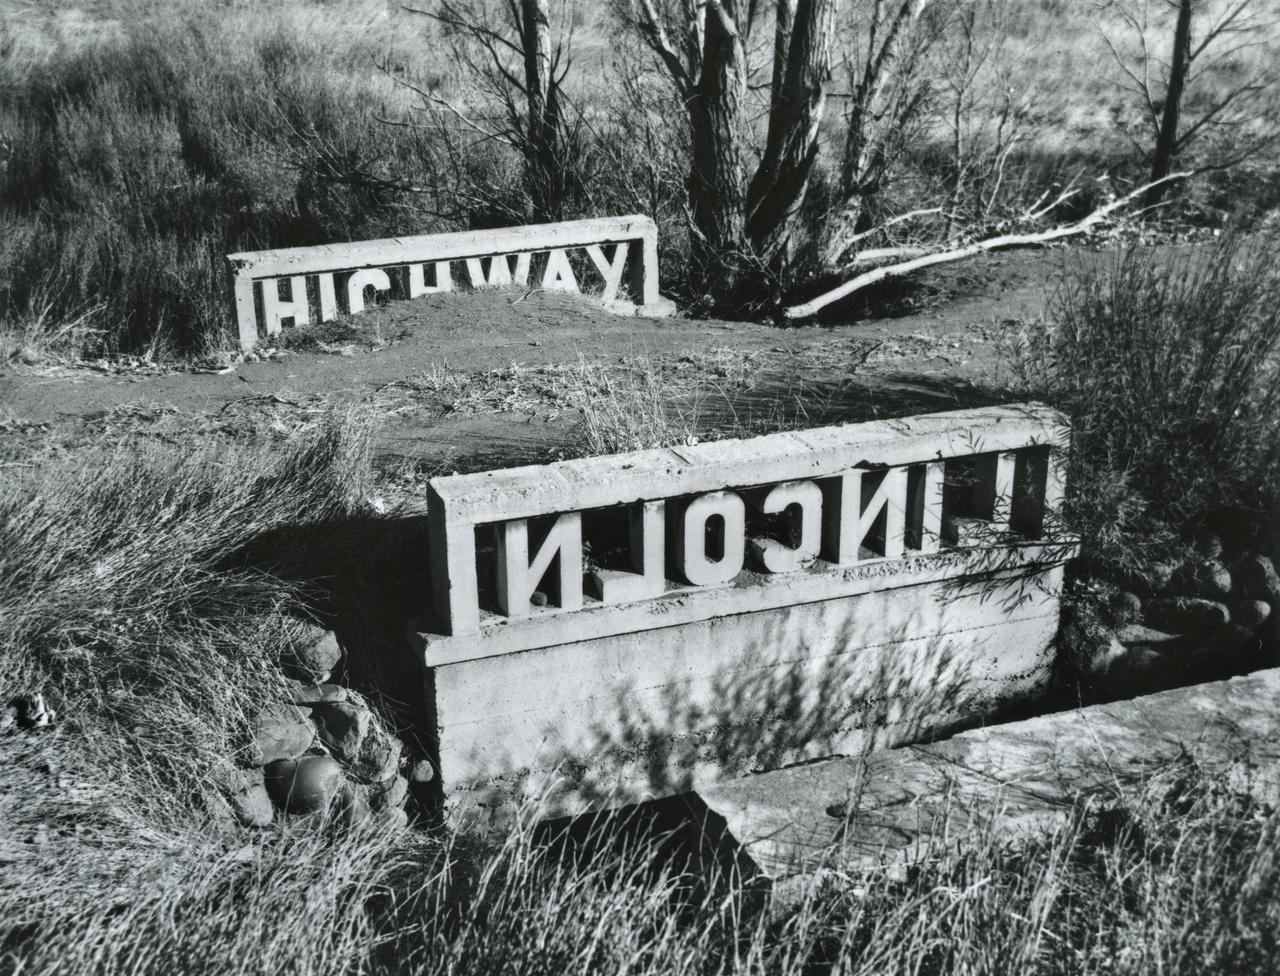 Historic Reno Preservation Society presents The Lincoln Highway 101: The First Transcontinental Highway Across America with Jim Bonar